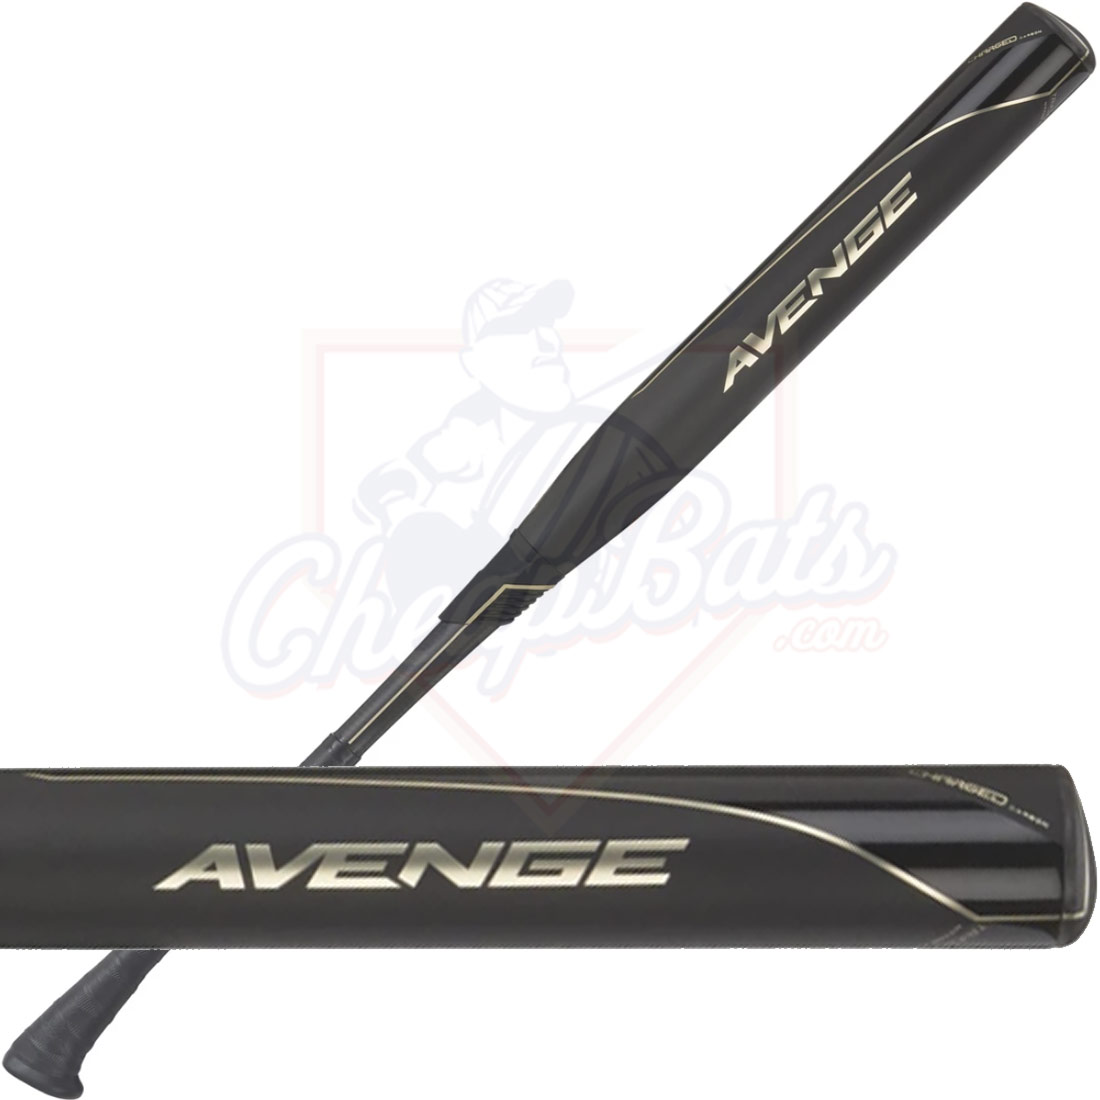 2020 Axe Avenge Slowpitch Softball Bat End Loaded USSSA L154H-E